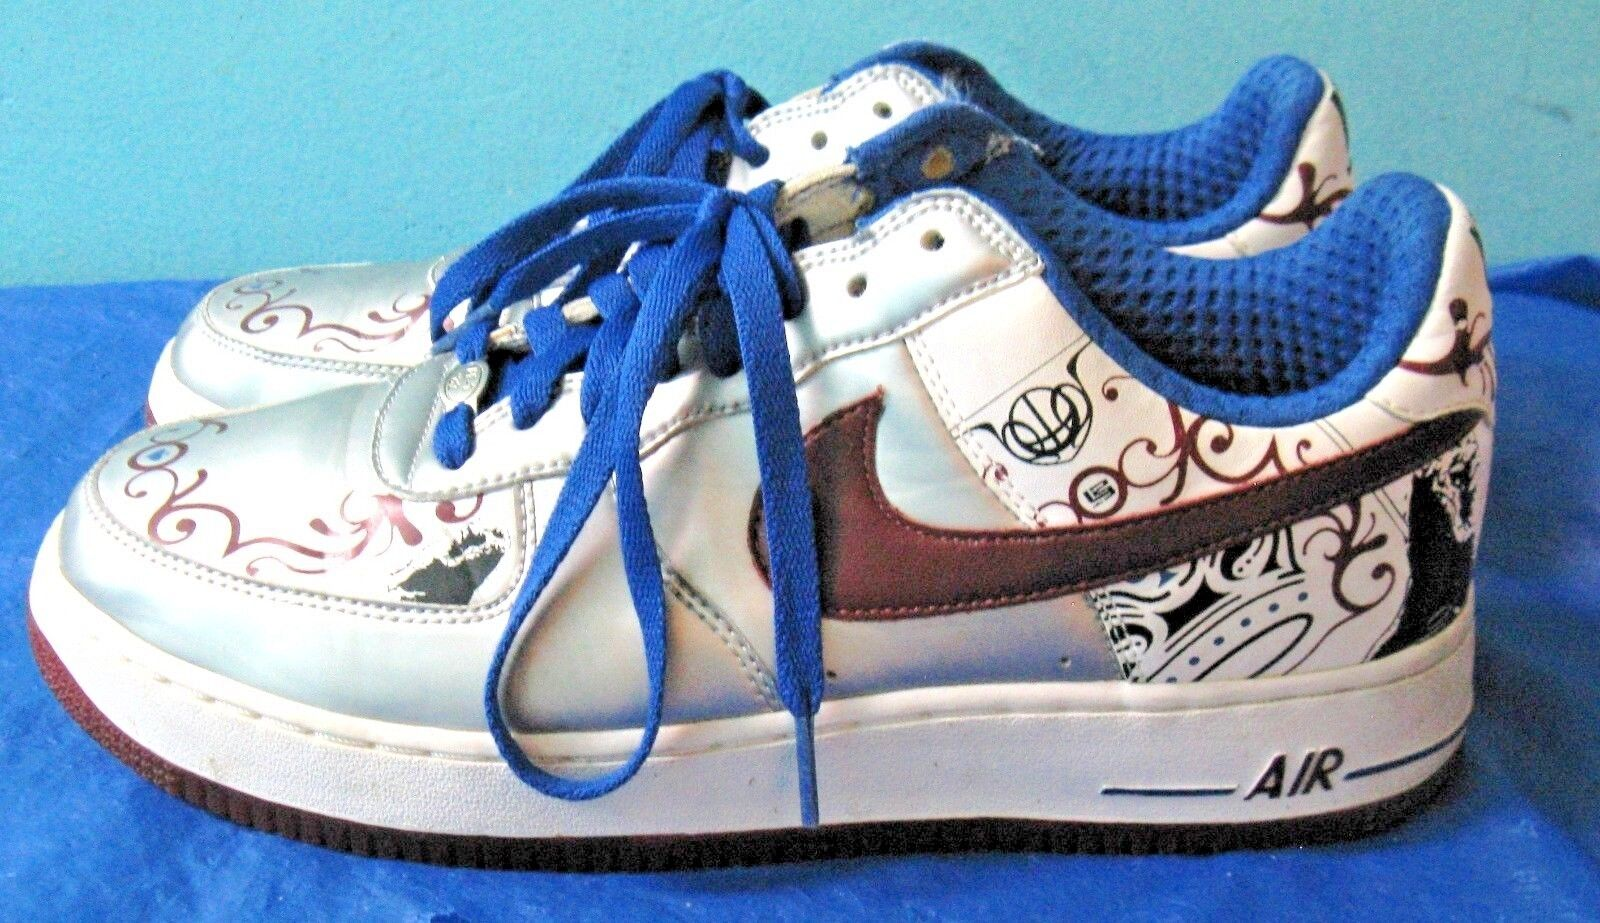 Nike LeBron James Air Force 1 AF1 Low Premium shoes 313985-061 (Sz 10)